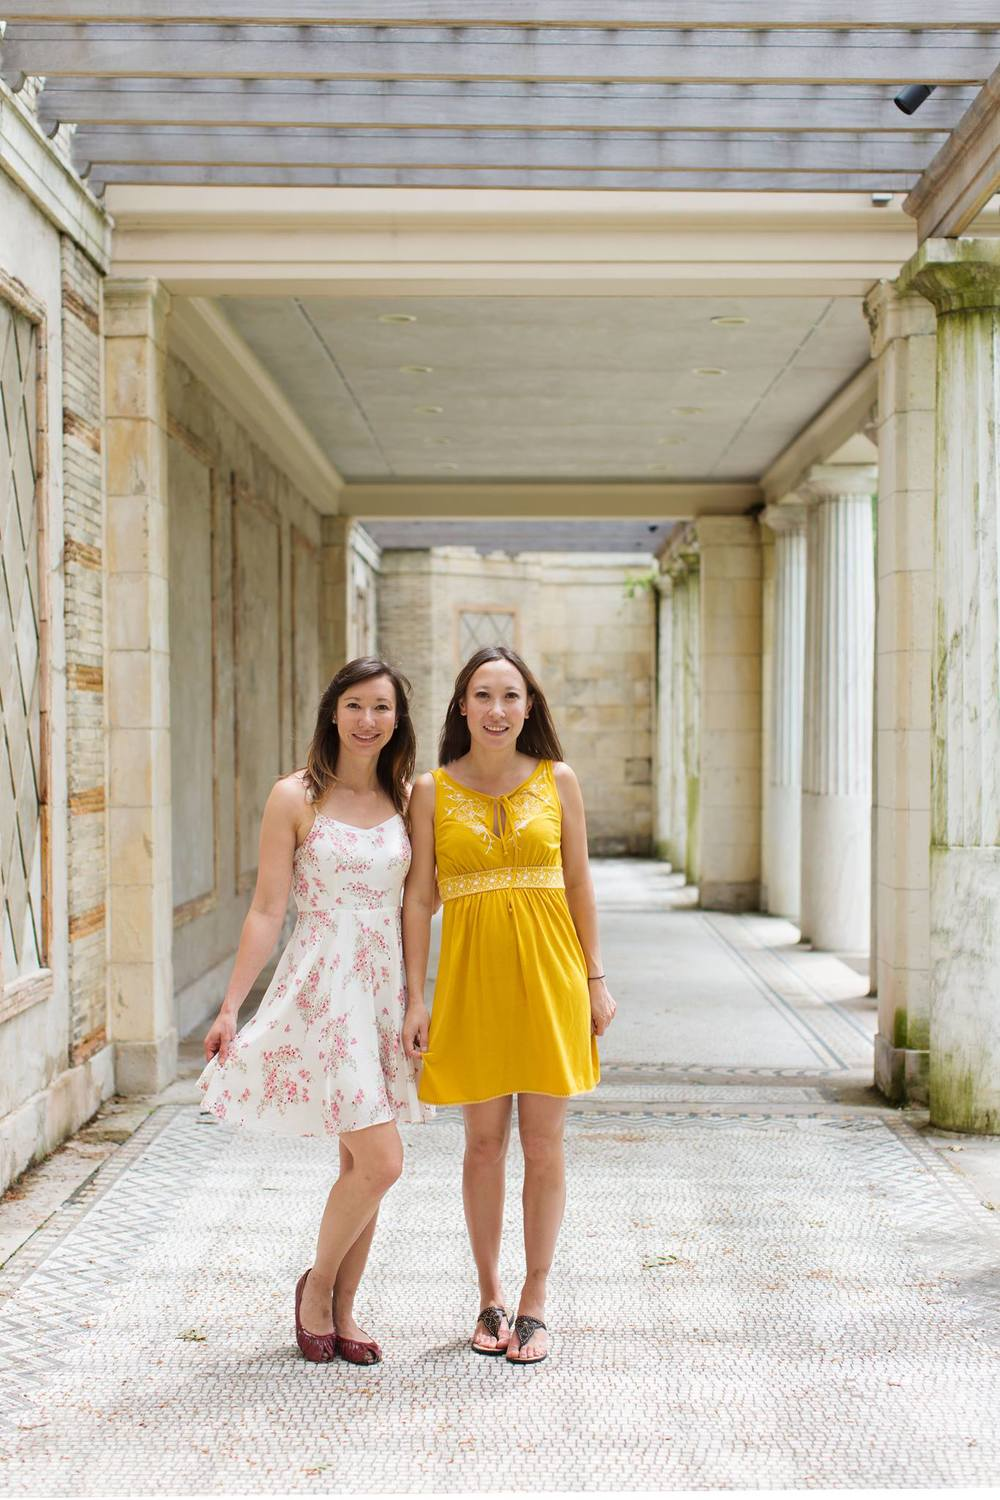 Me and my sister Lisa at Untermyer Gardens  L. Weatherbee Photography